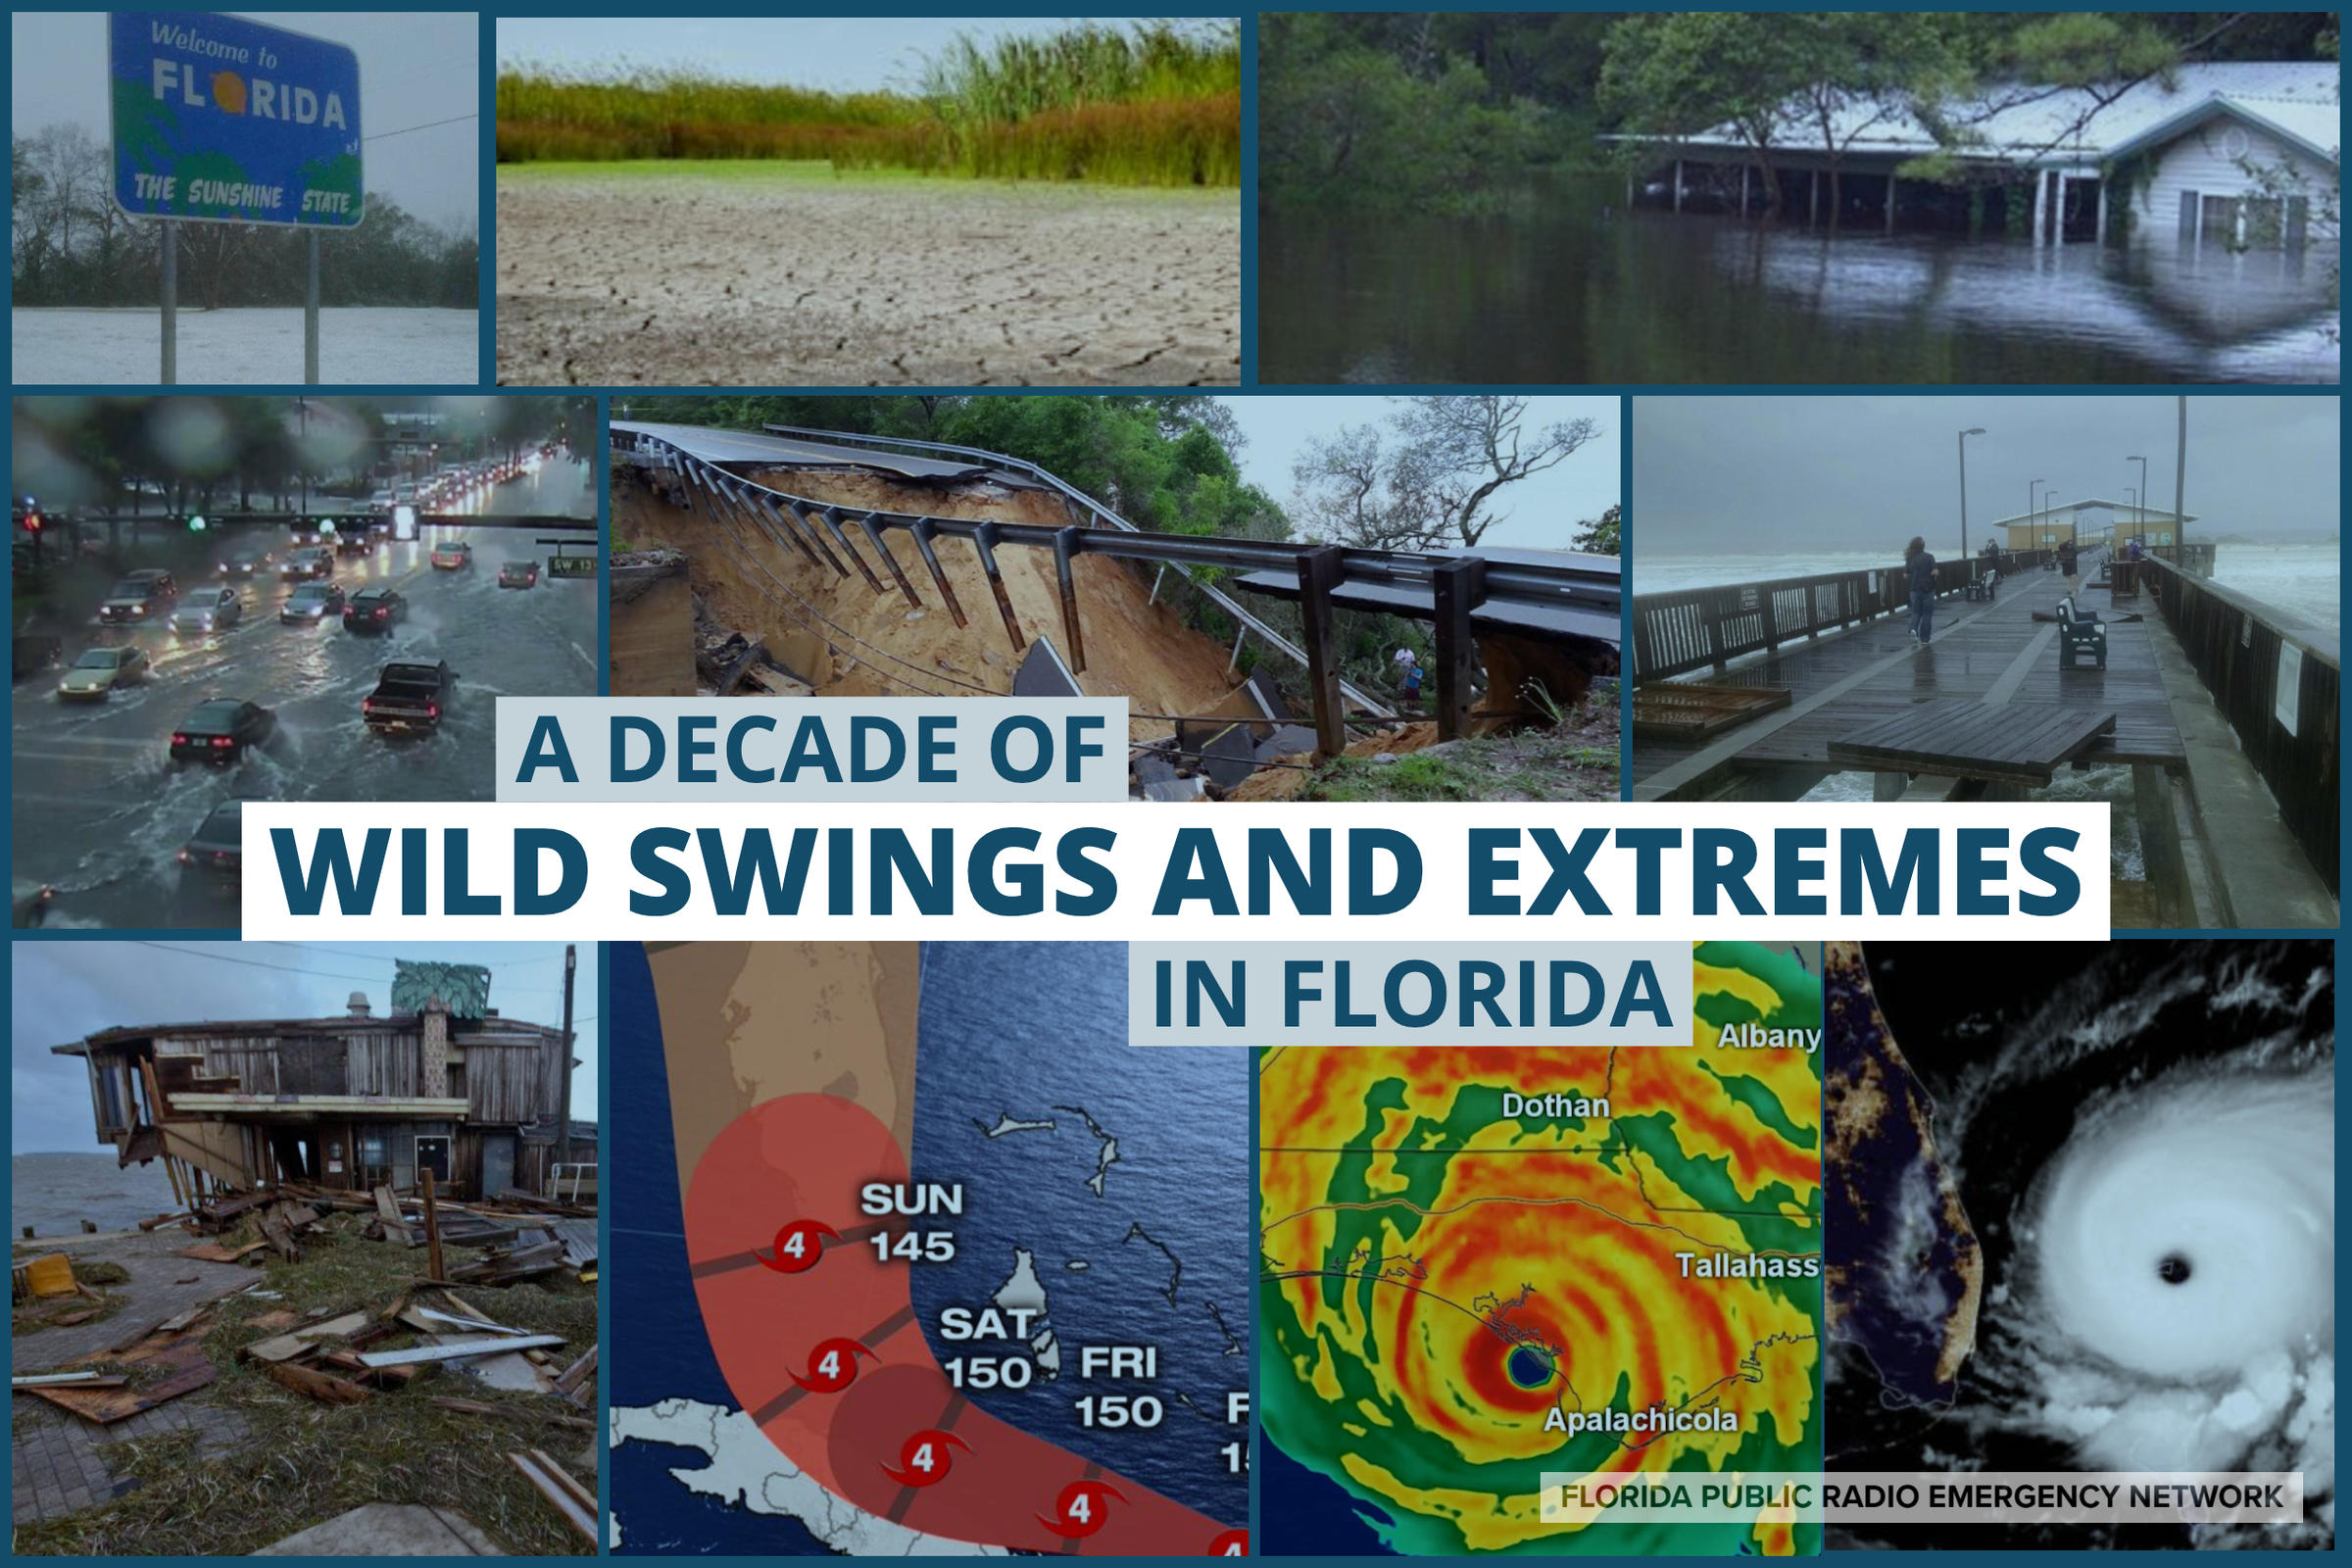 It Was a Decade of Wild Swings and Weather Extremes in Florida